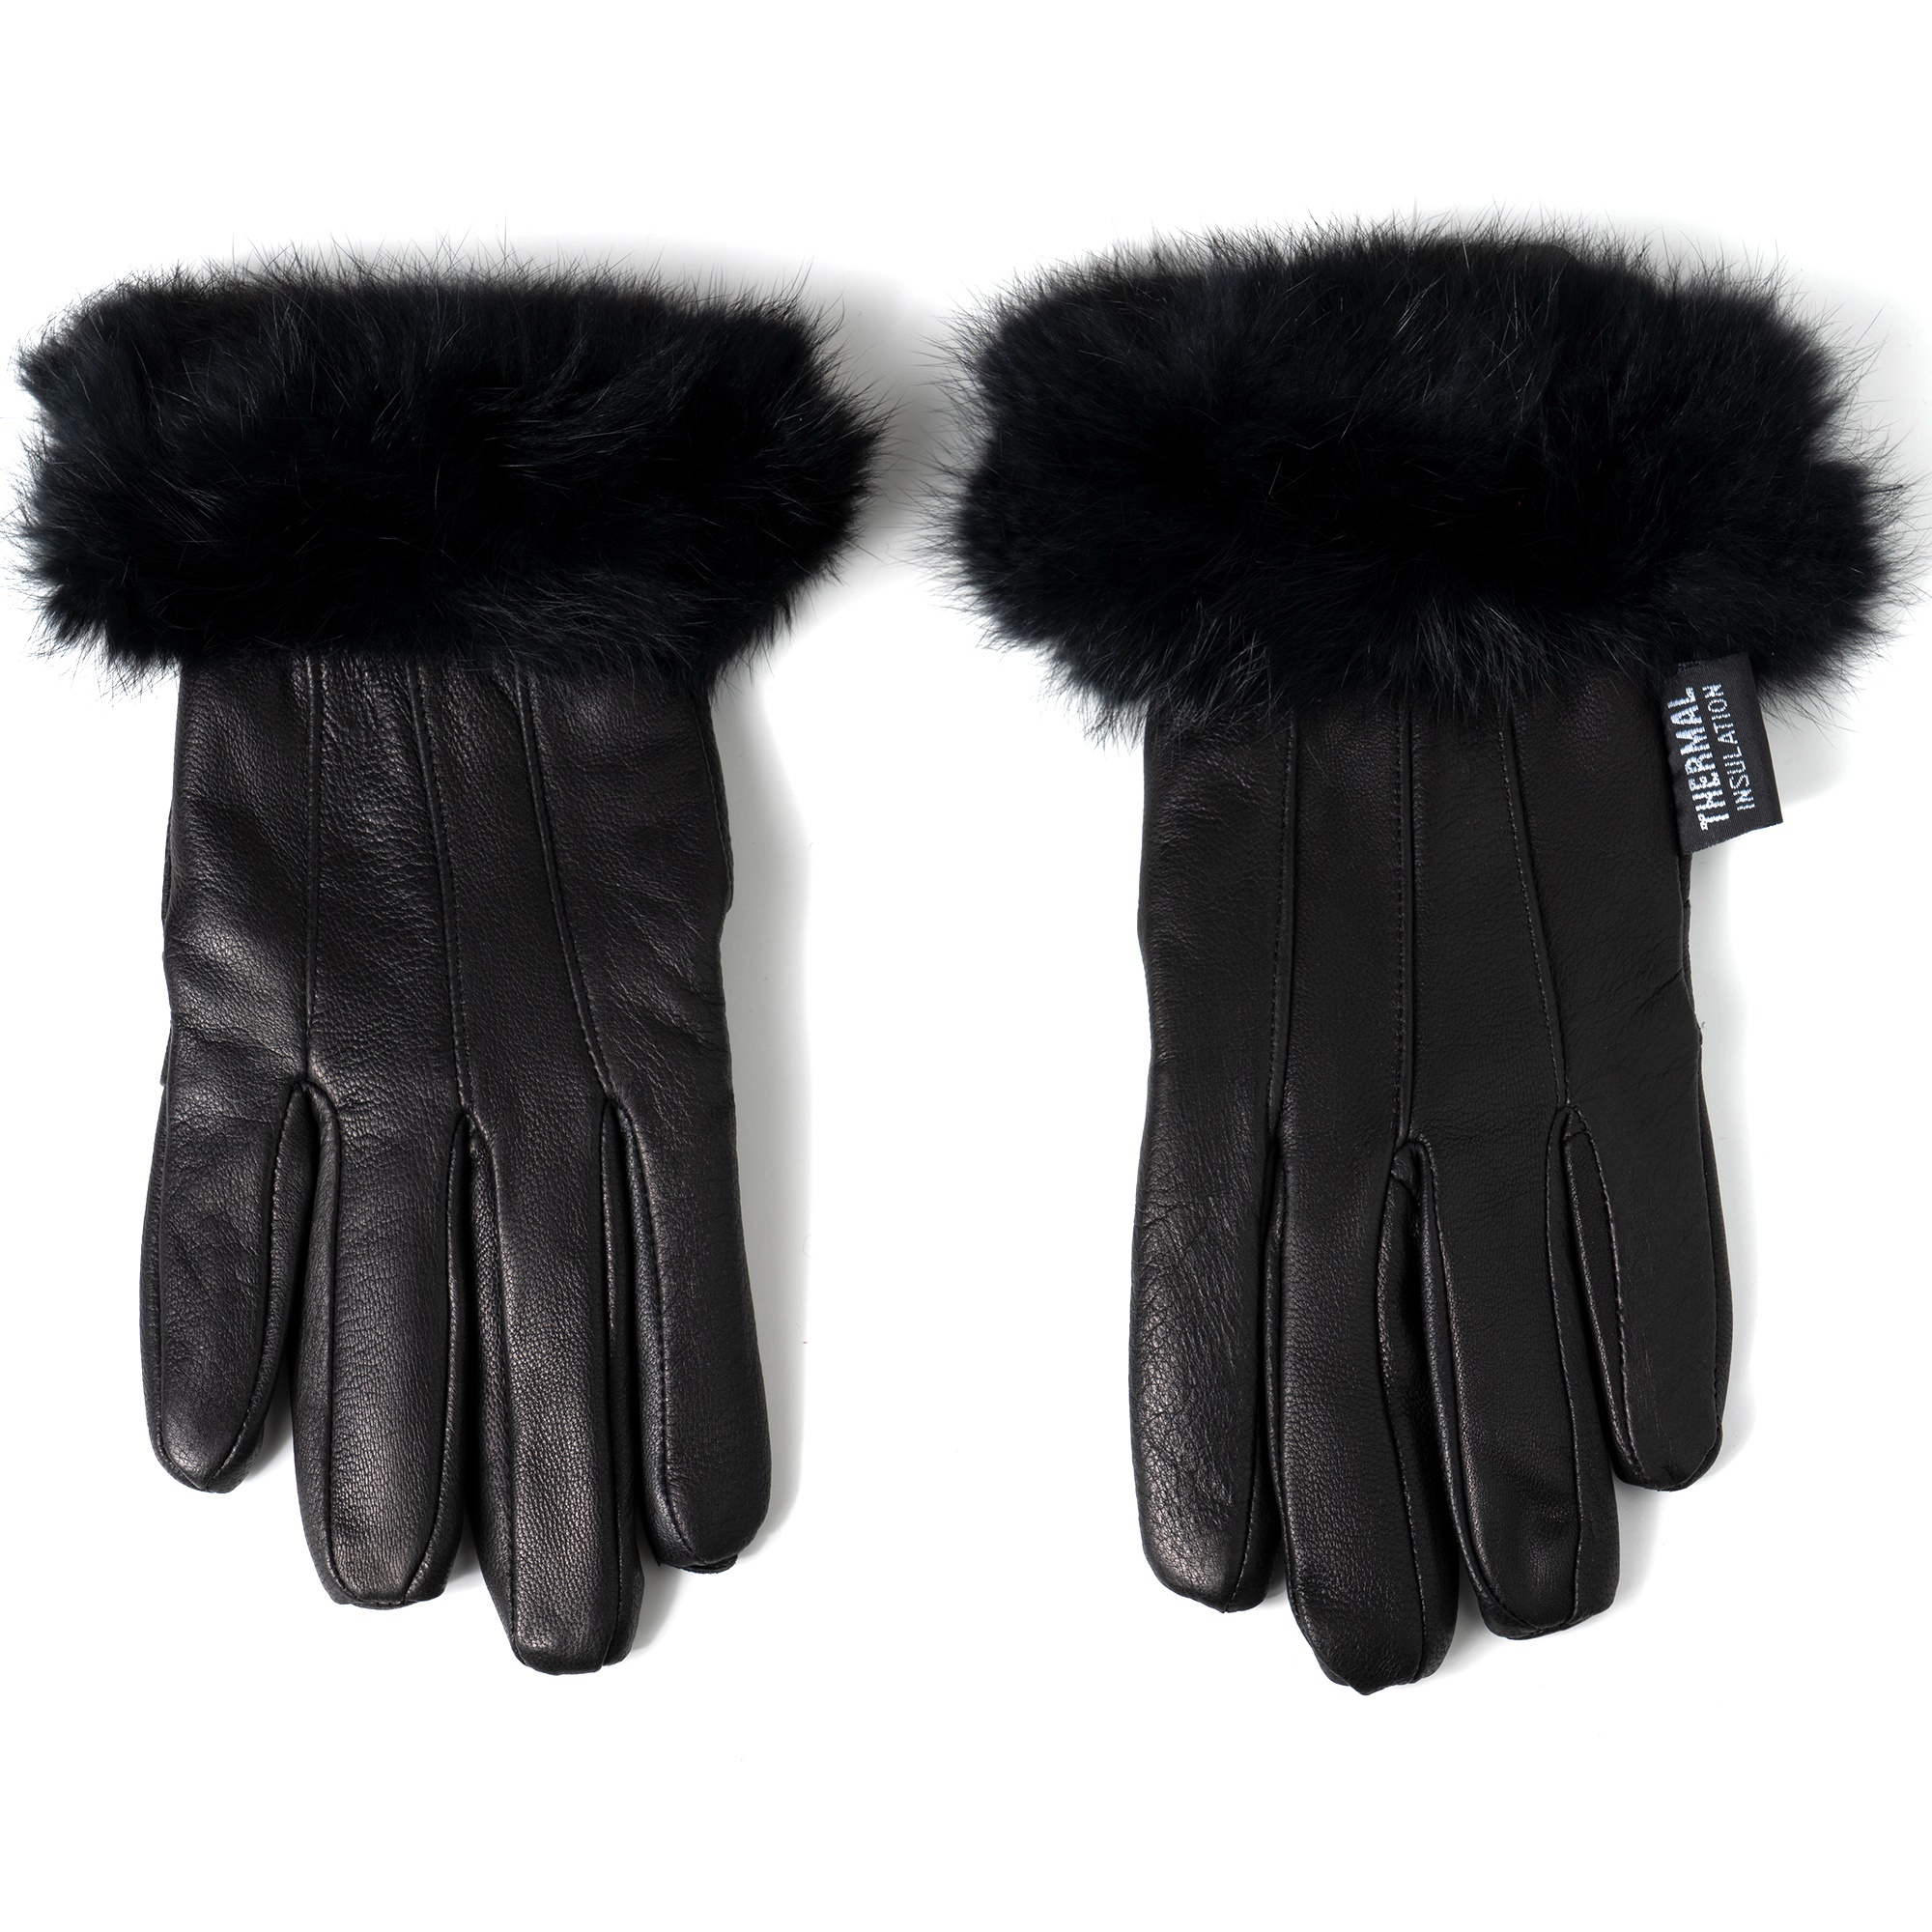 Alpine-Swiss-Womens-Dressy-Gloves-Genuine-Leather-Thermal-Lining-Fur-Trim-Cuff thumbnail 17